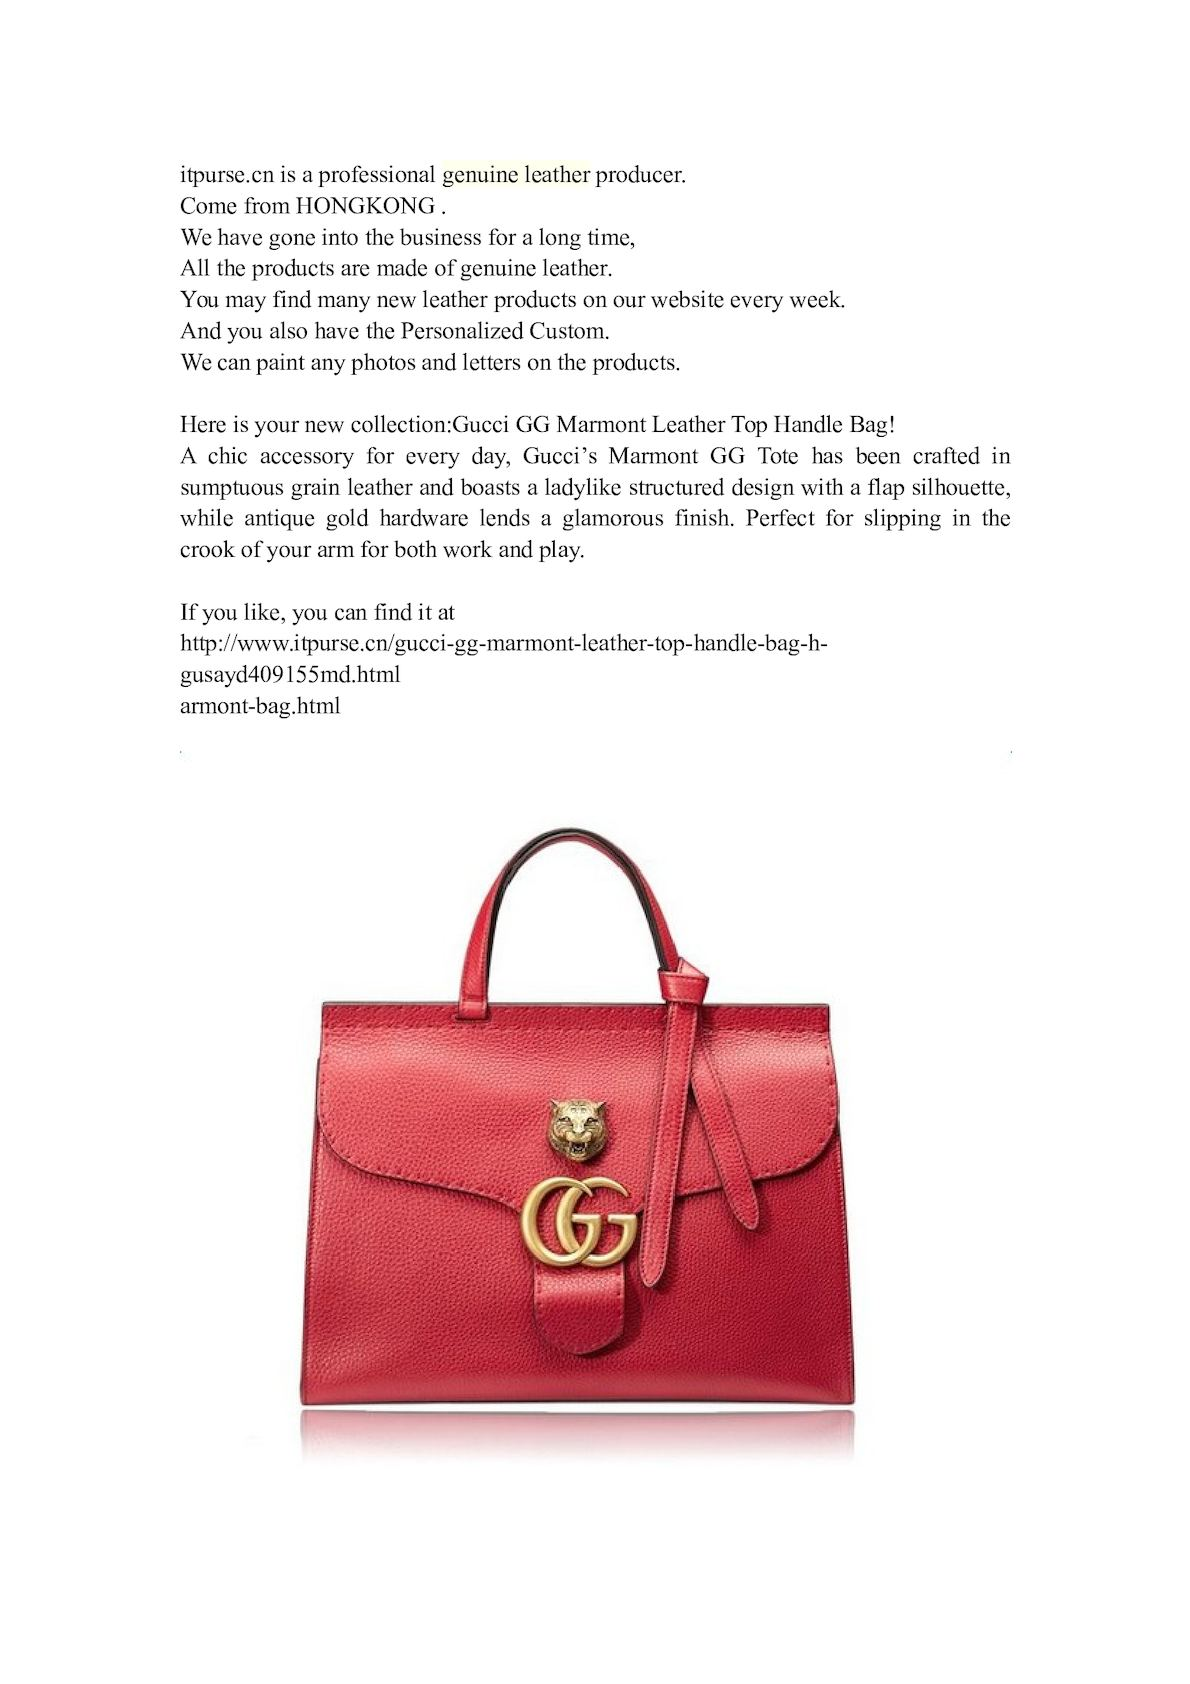 5178891b435def Calaméo - You May Like Gucci Gg Marmont Leather Top Handle Bag